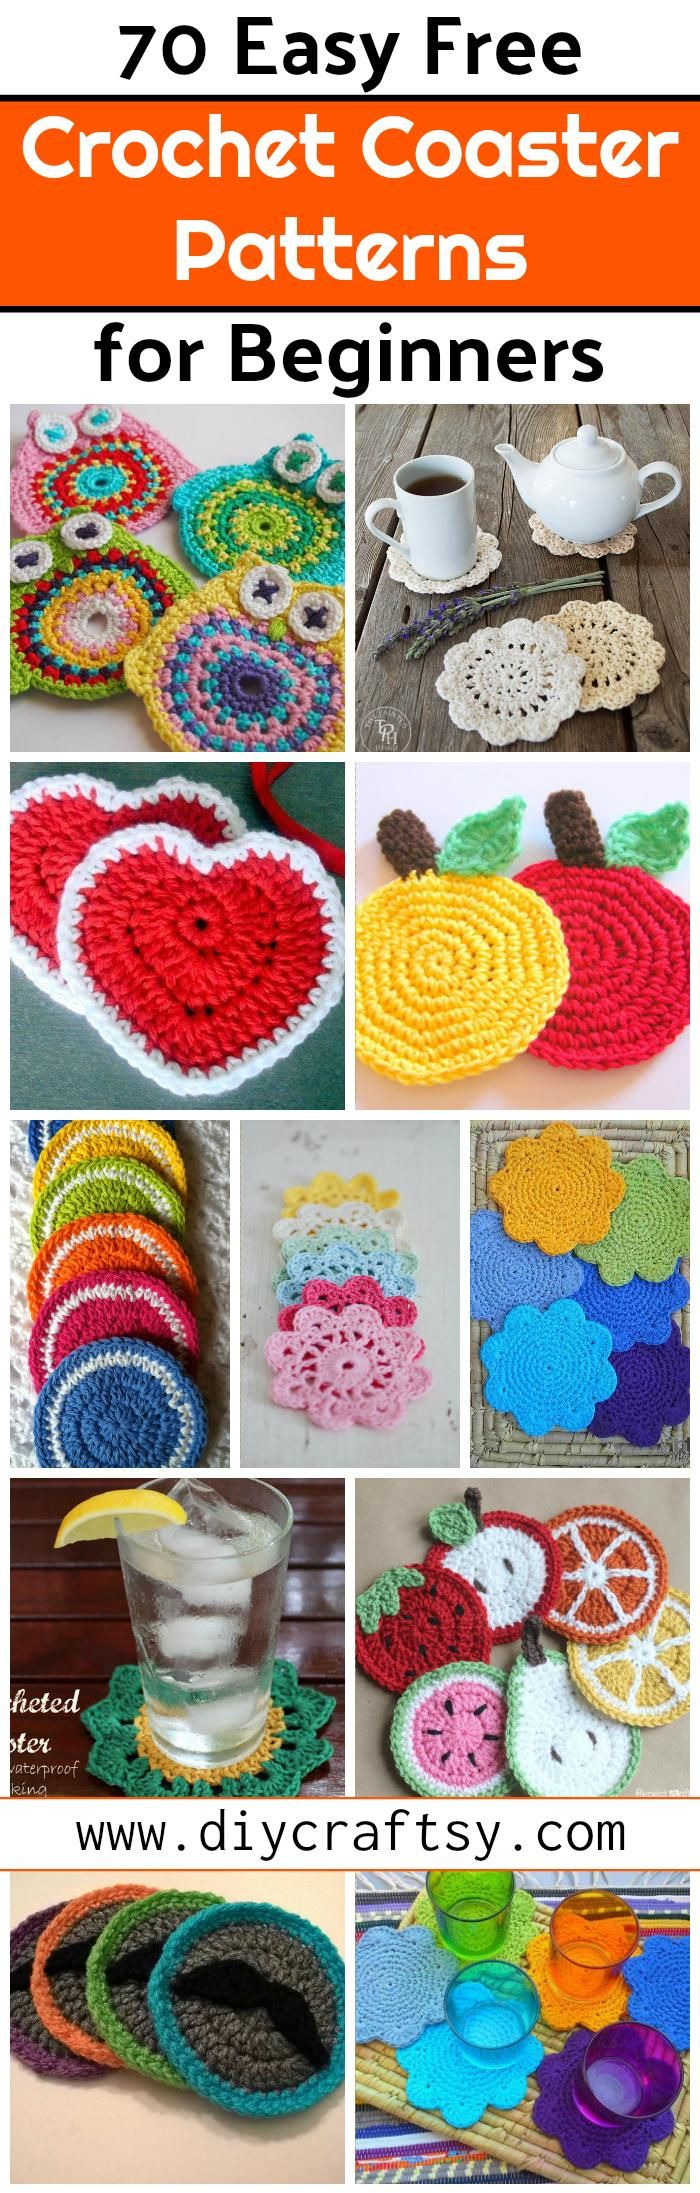 You can create beautiful crochet coasters using your crochet hook! We have shared here are 70+ free crochet coaster patterns with all instructions that